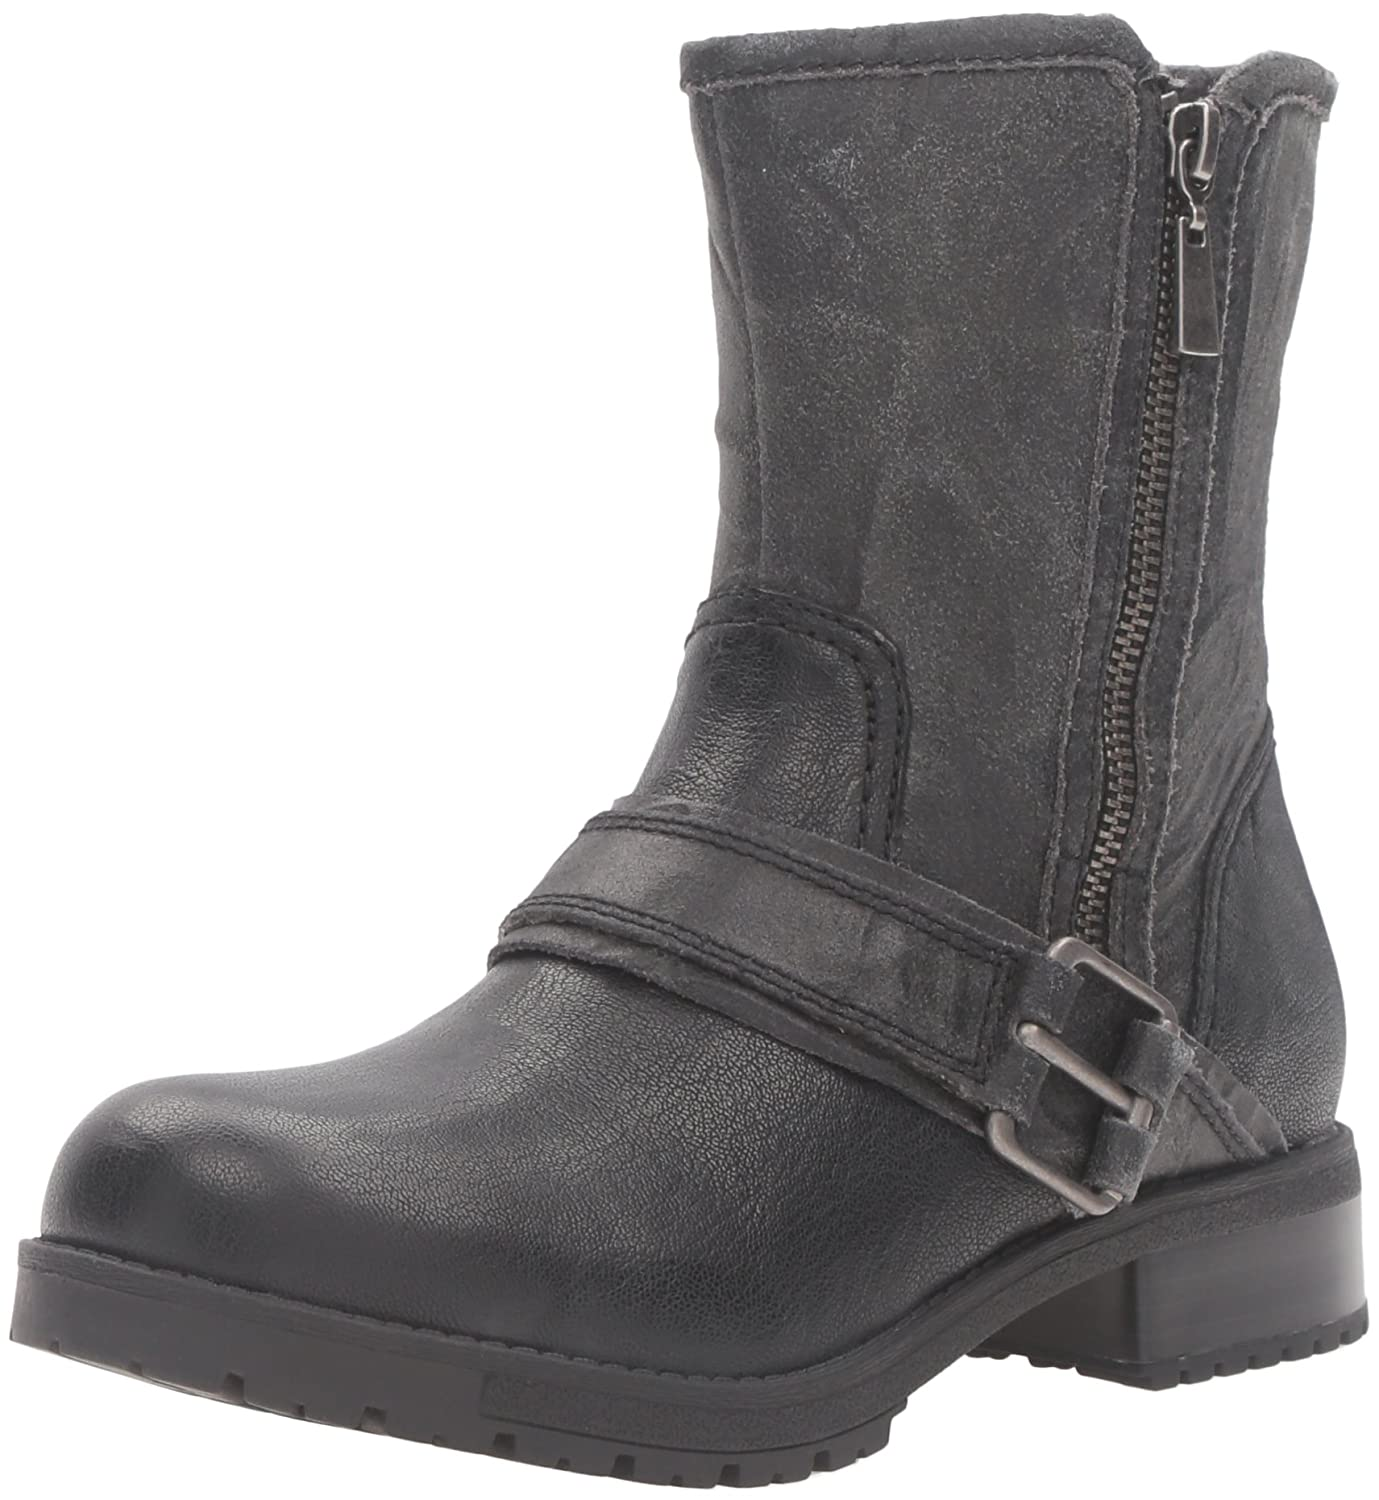 CLARKS Women's Faralyn Rise Boot B0198WEK4C 9 B(M) US|Black Nubuck